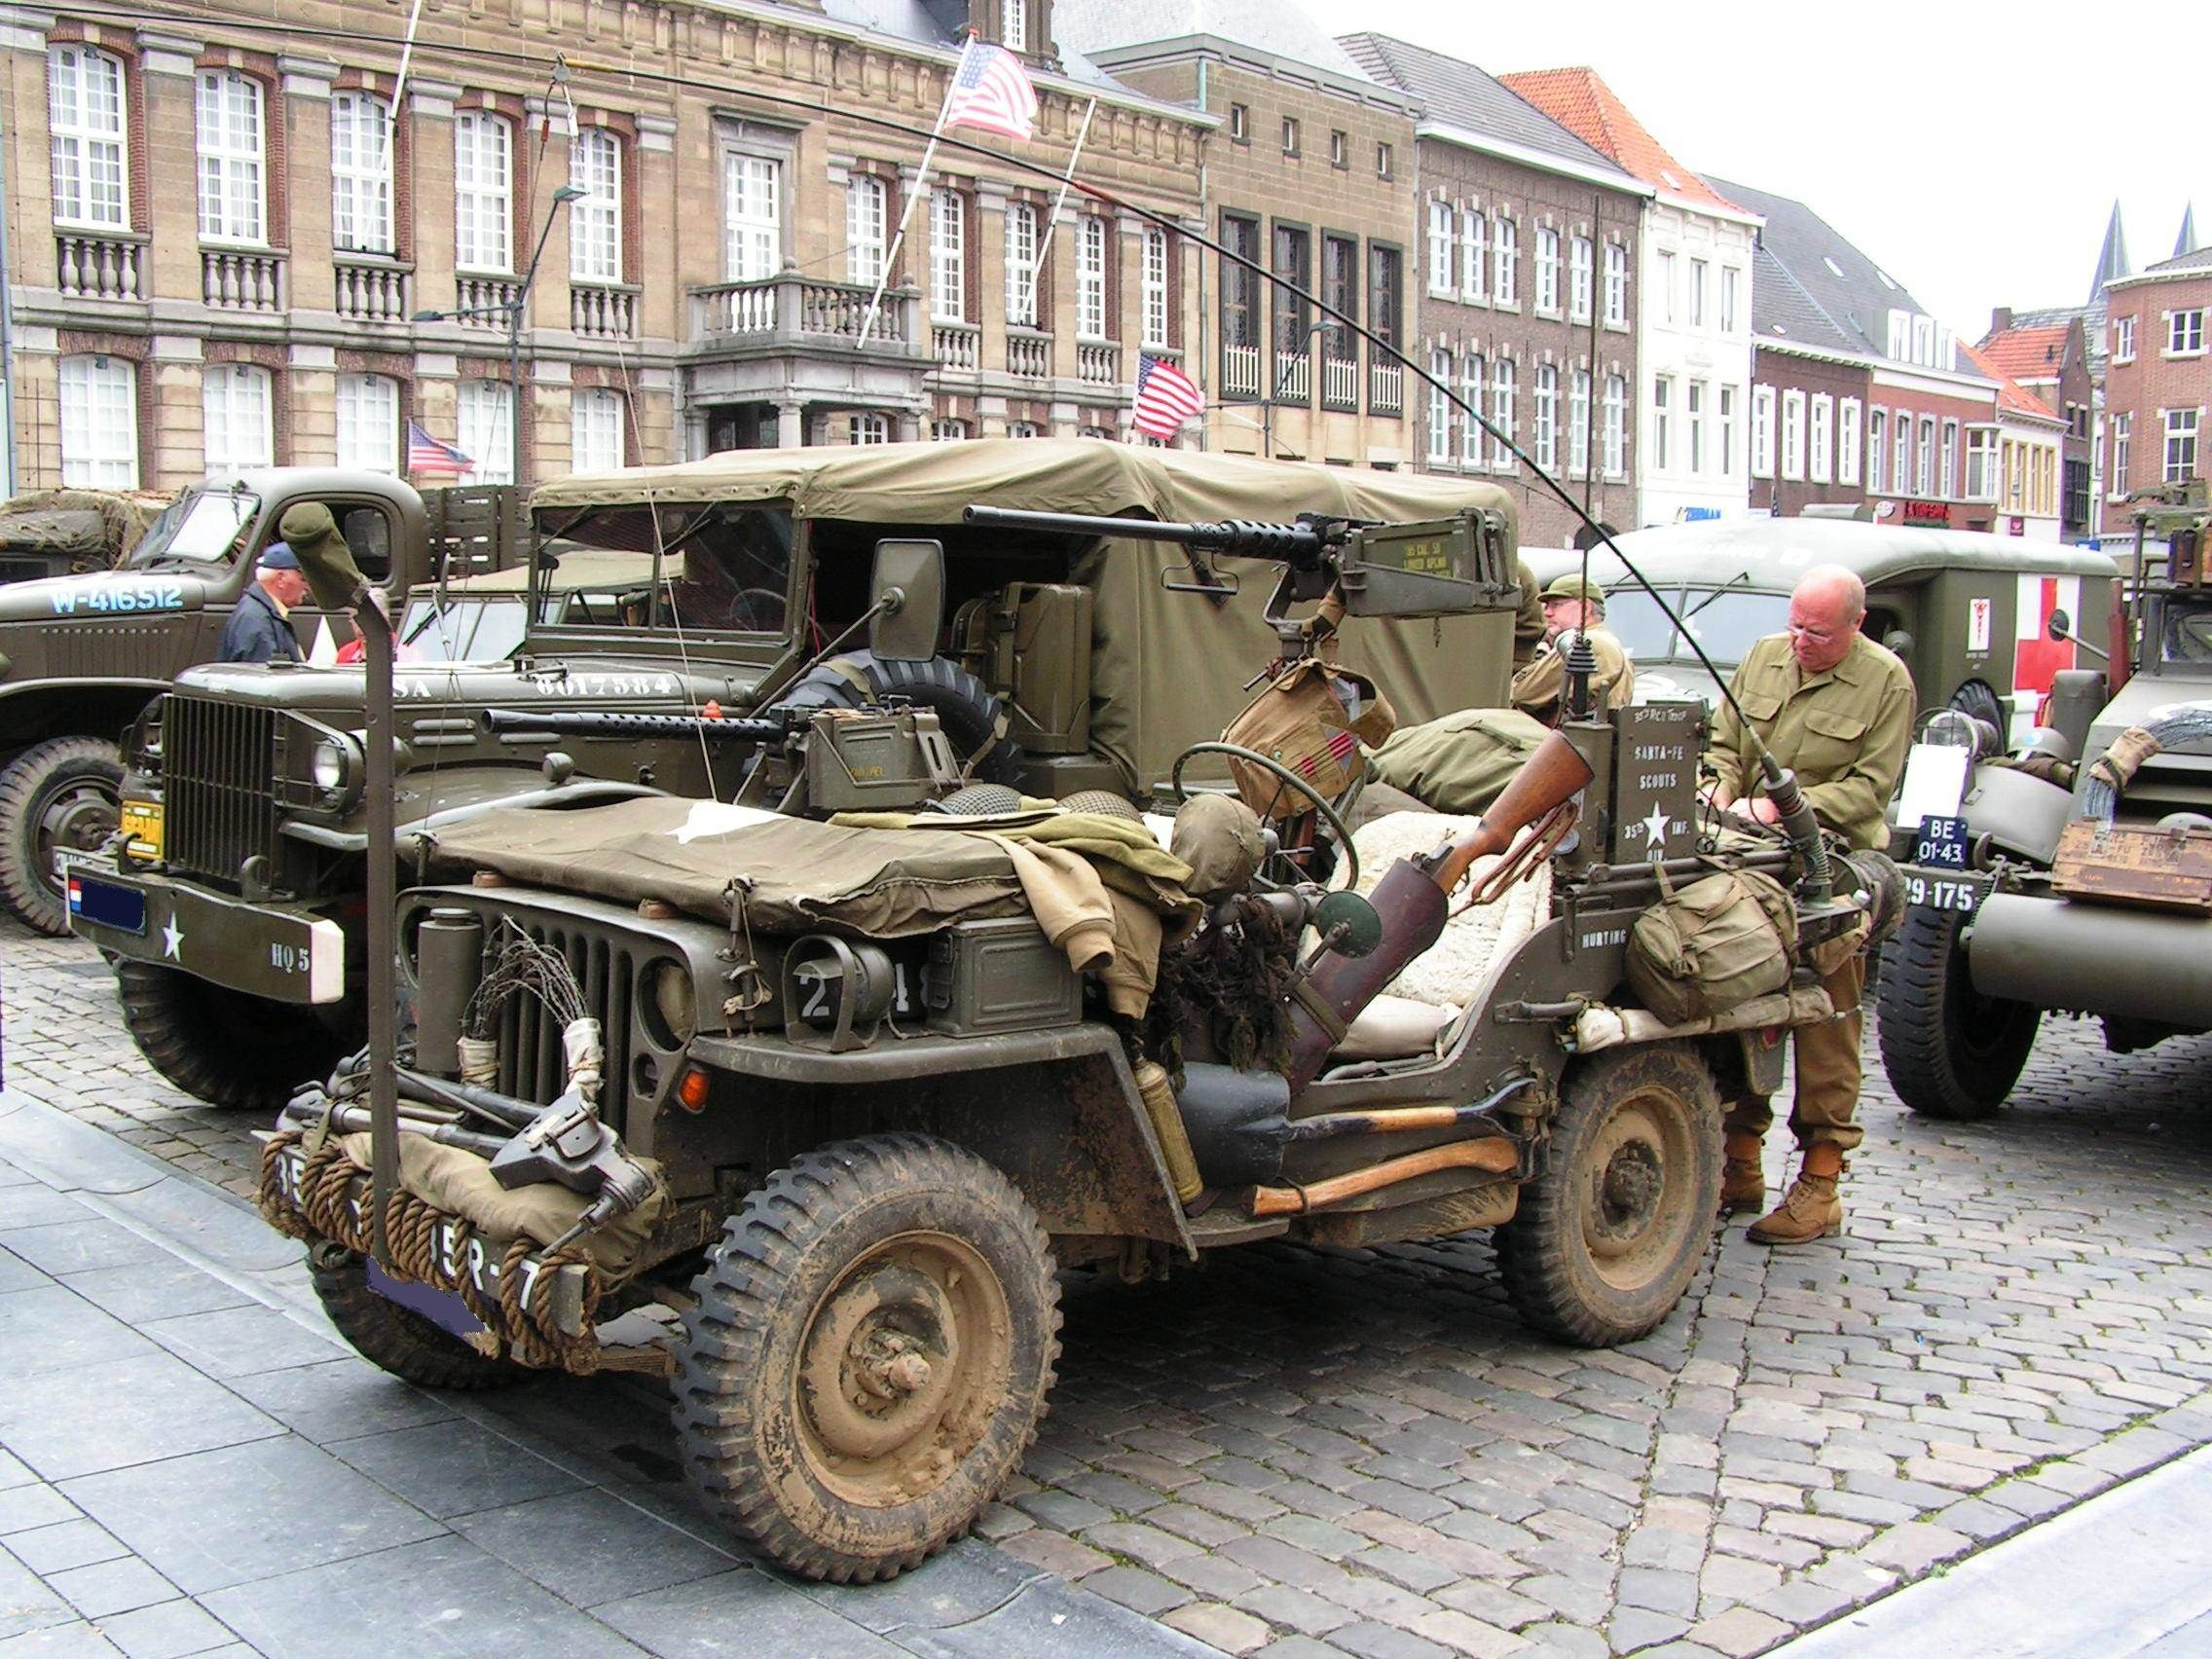 Army Jeep think of what four guy s and a simple e along could